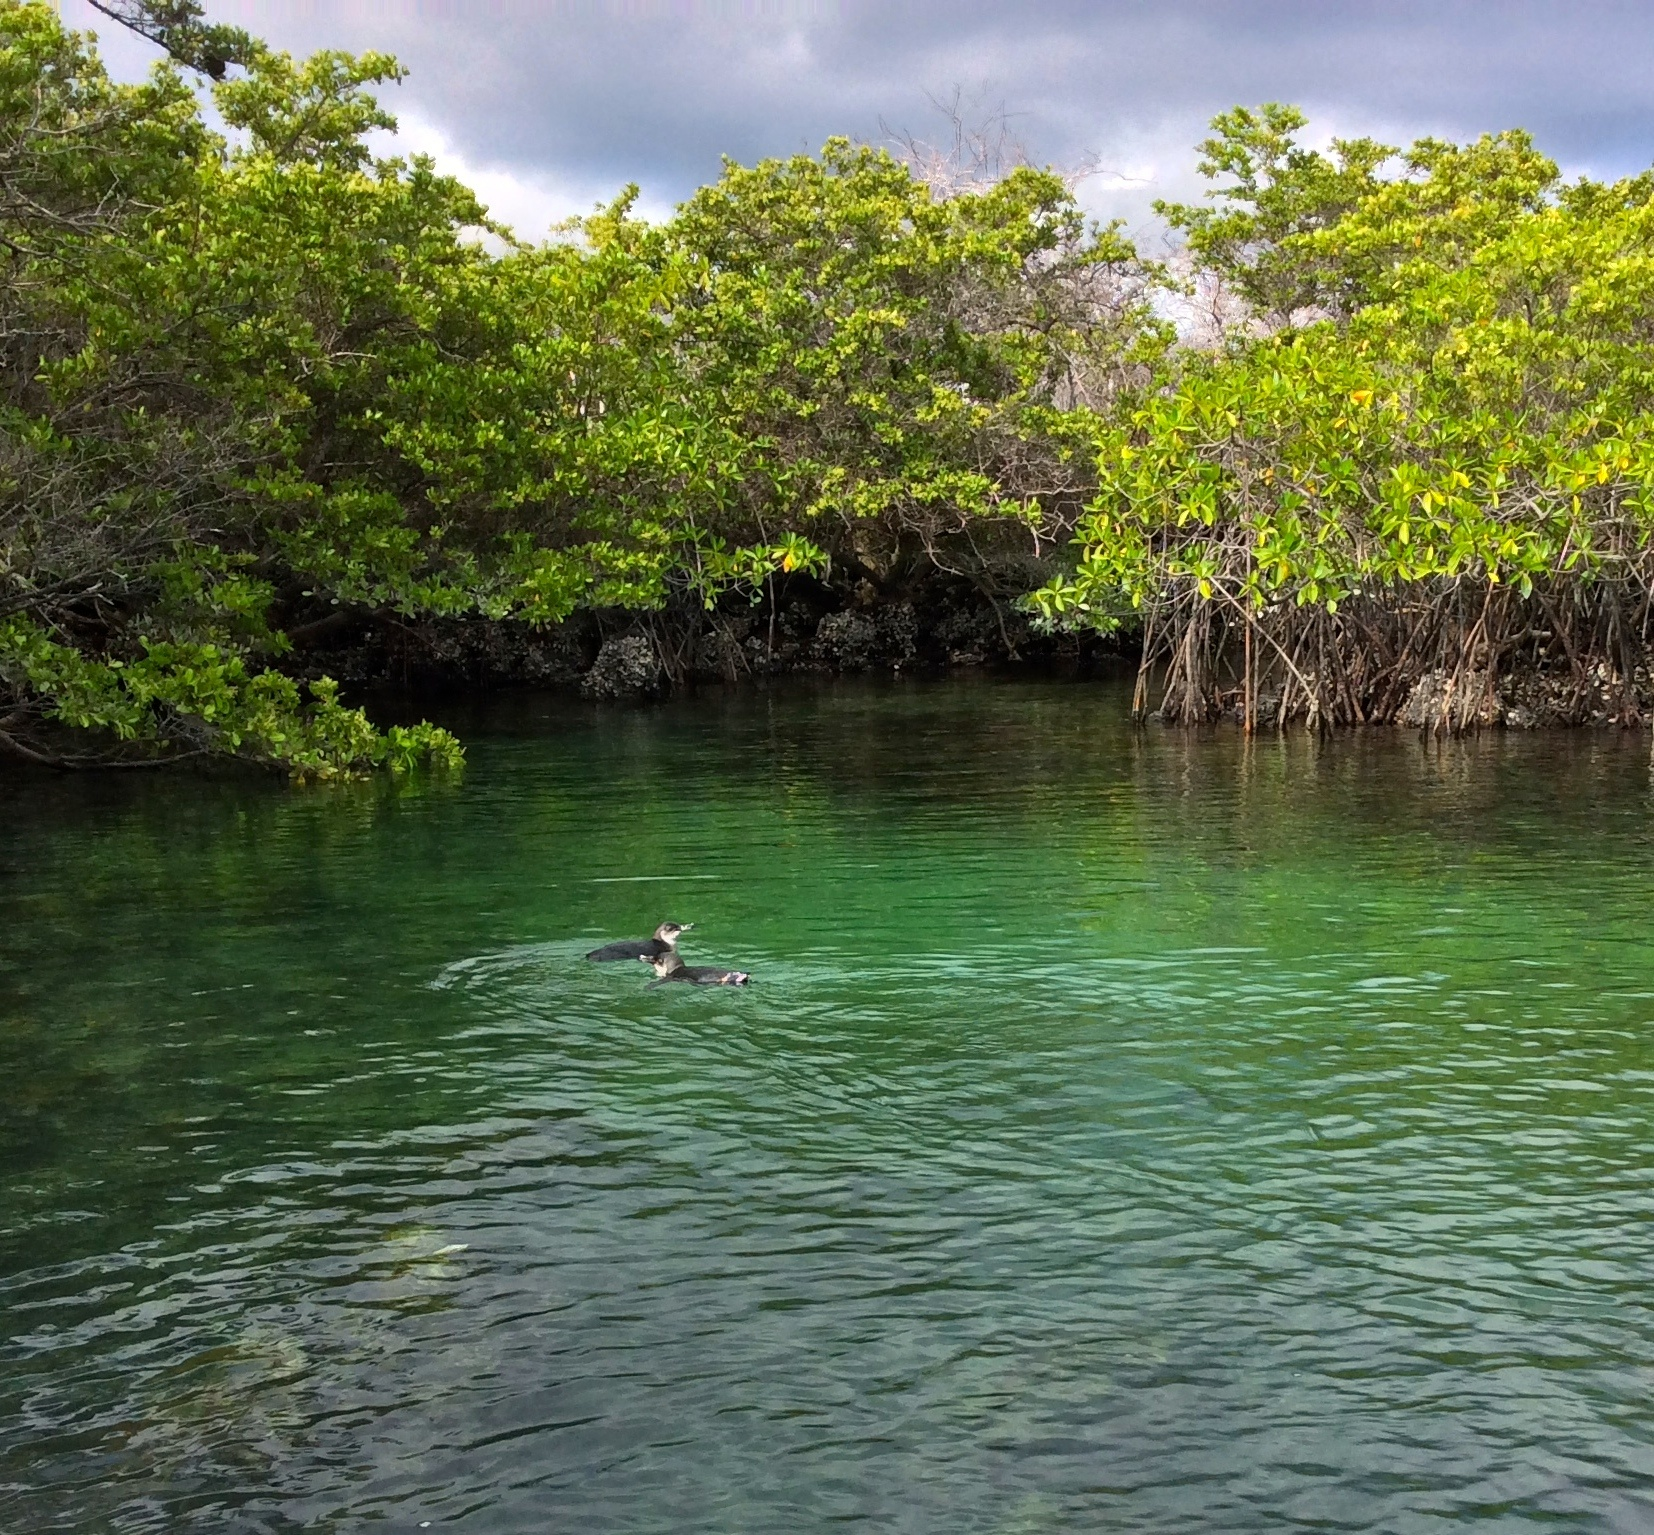 A couple of penguins swimming around in the mangroves.